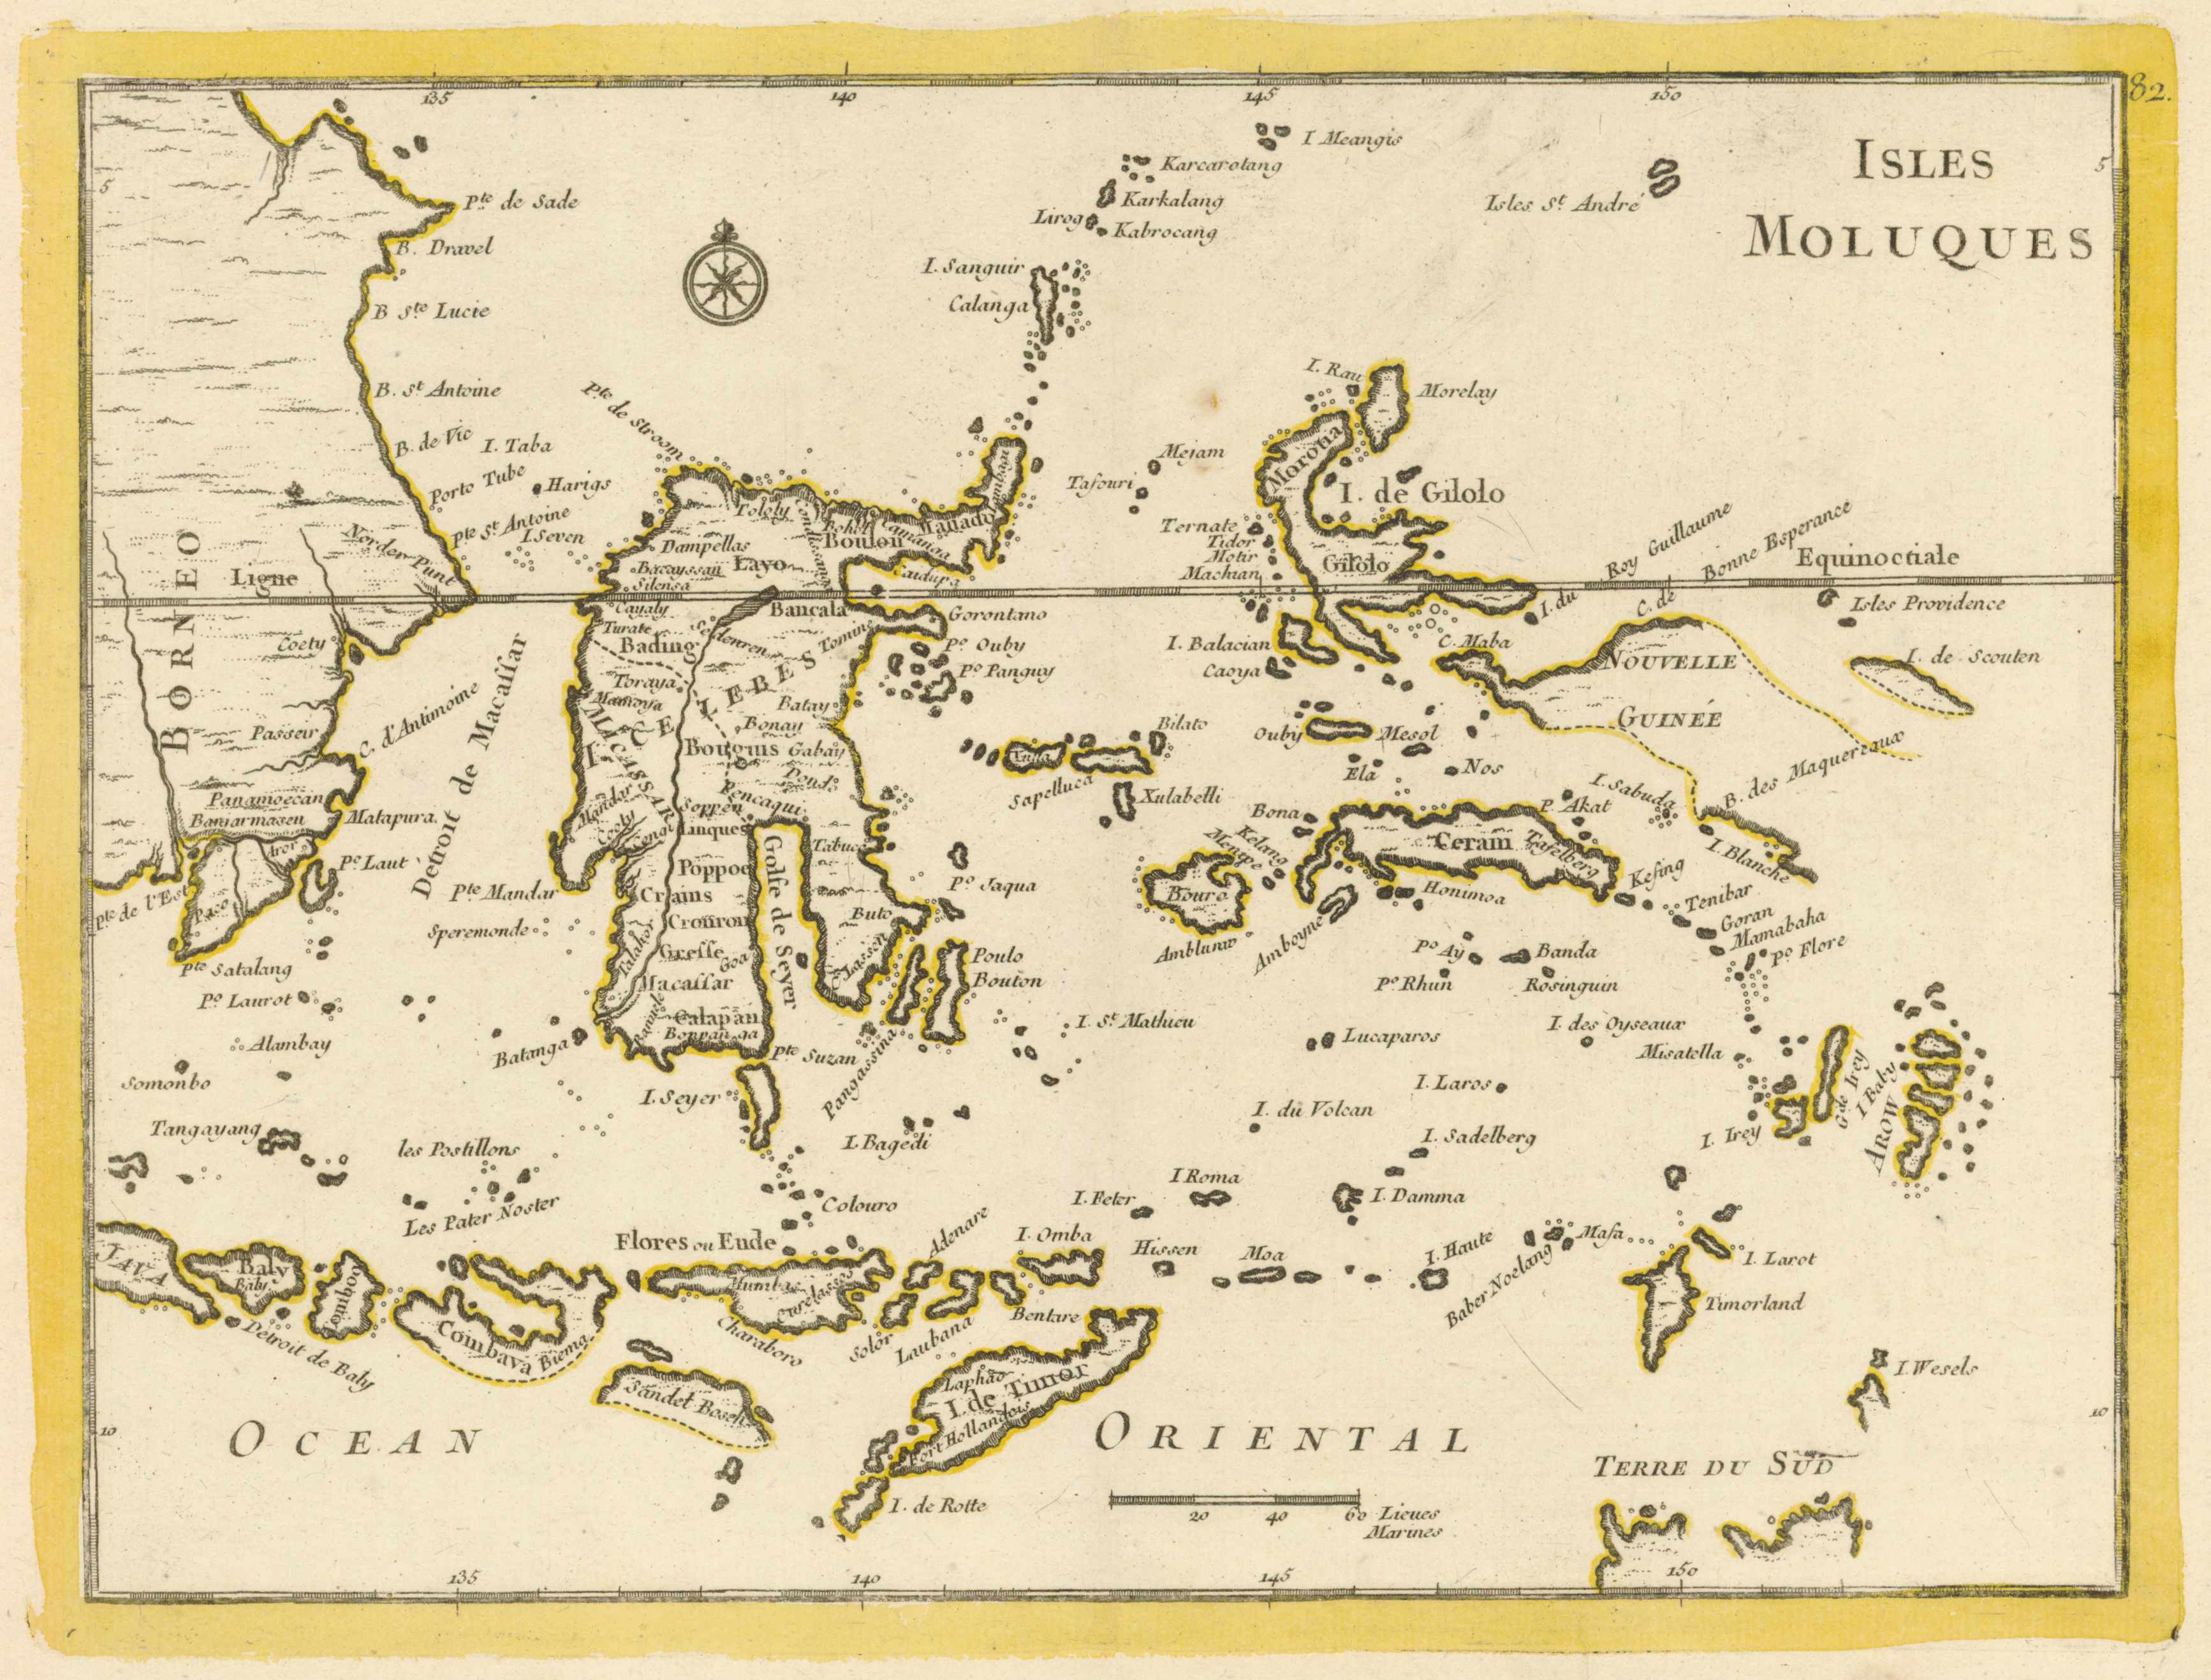 Spice Islands Historic Maps - Islands map